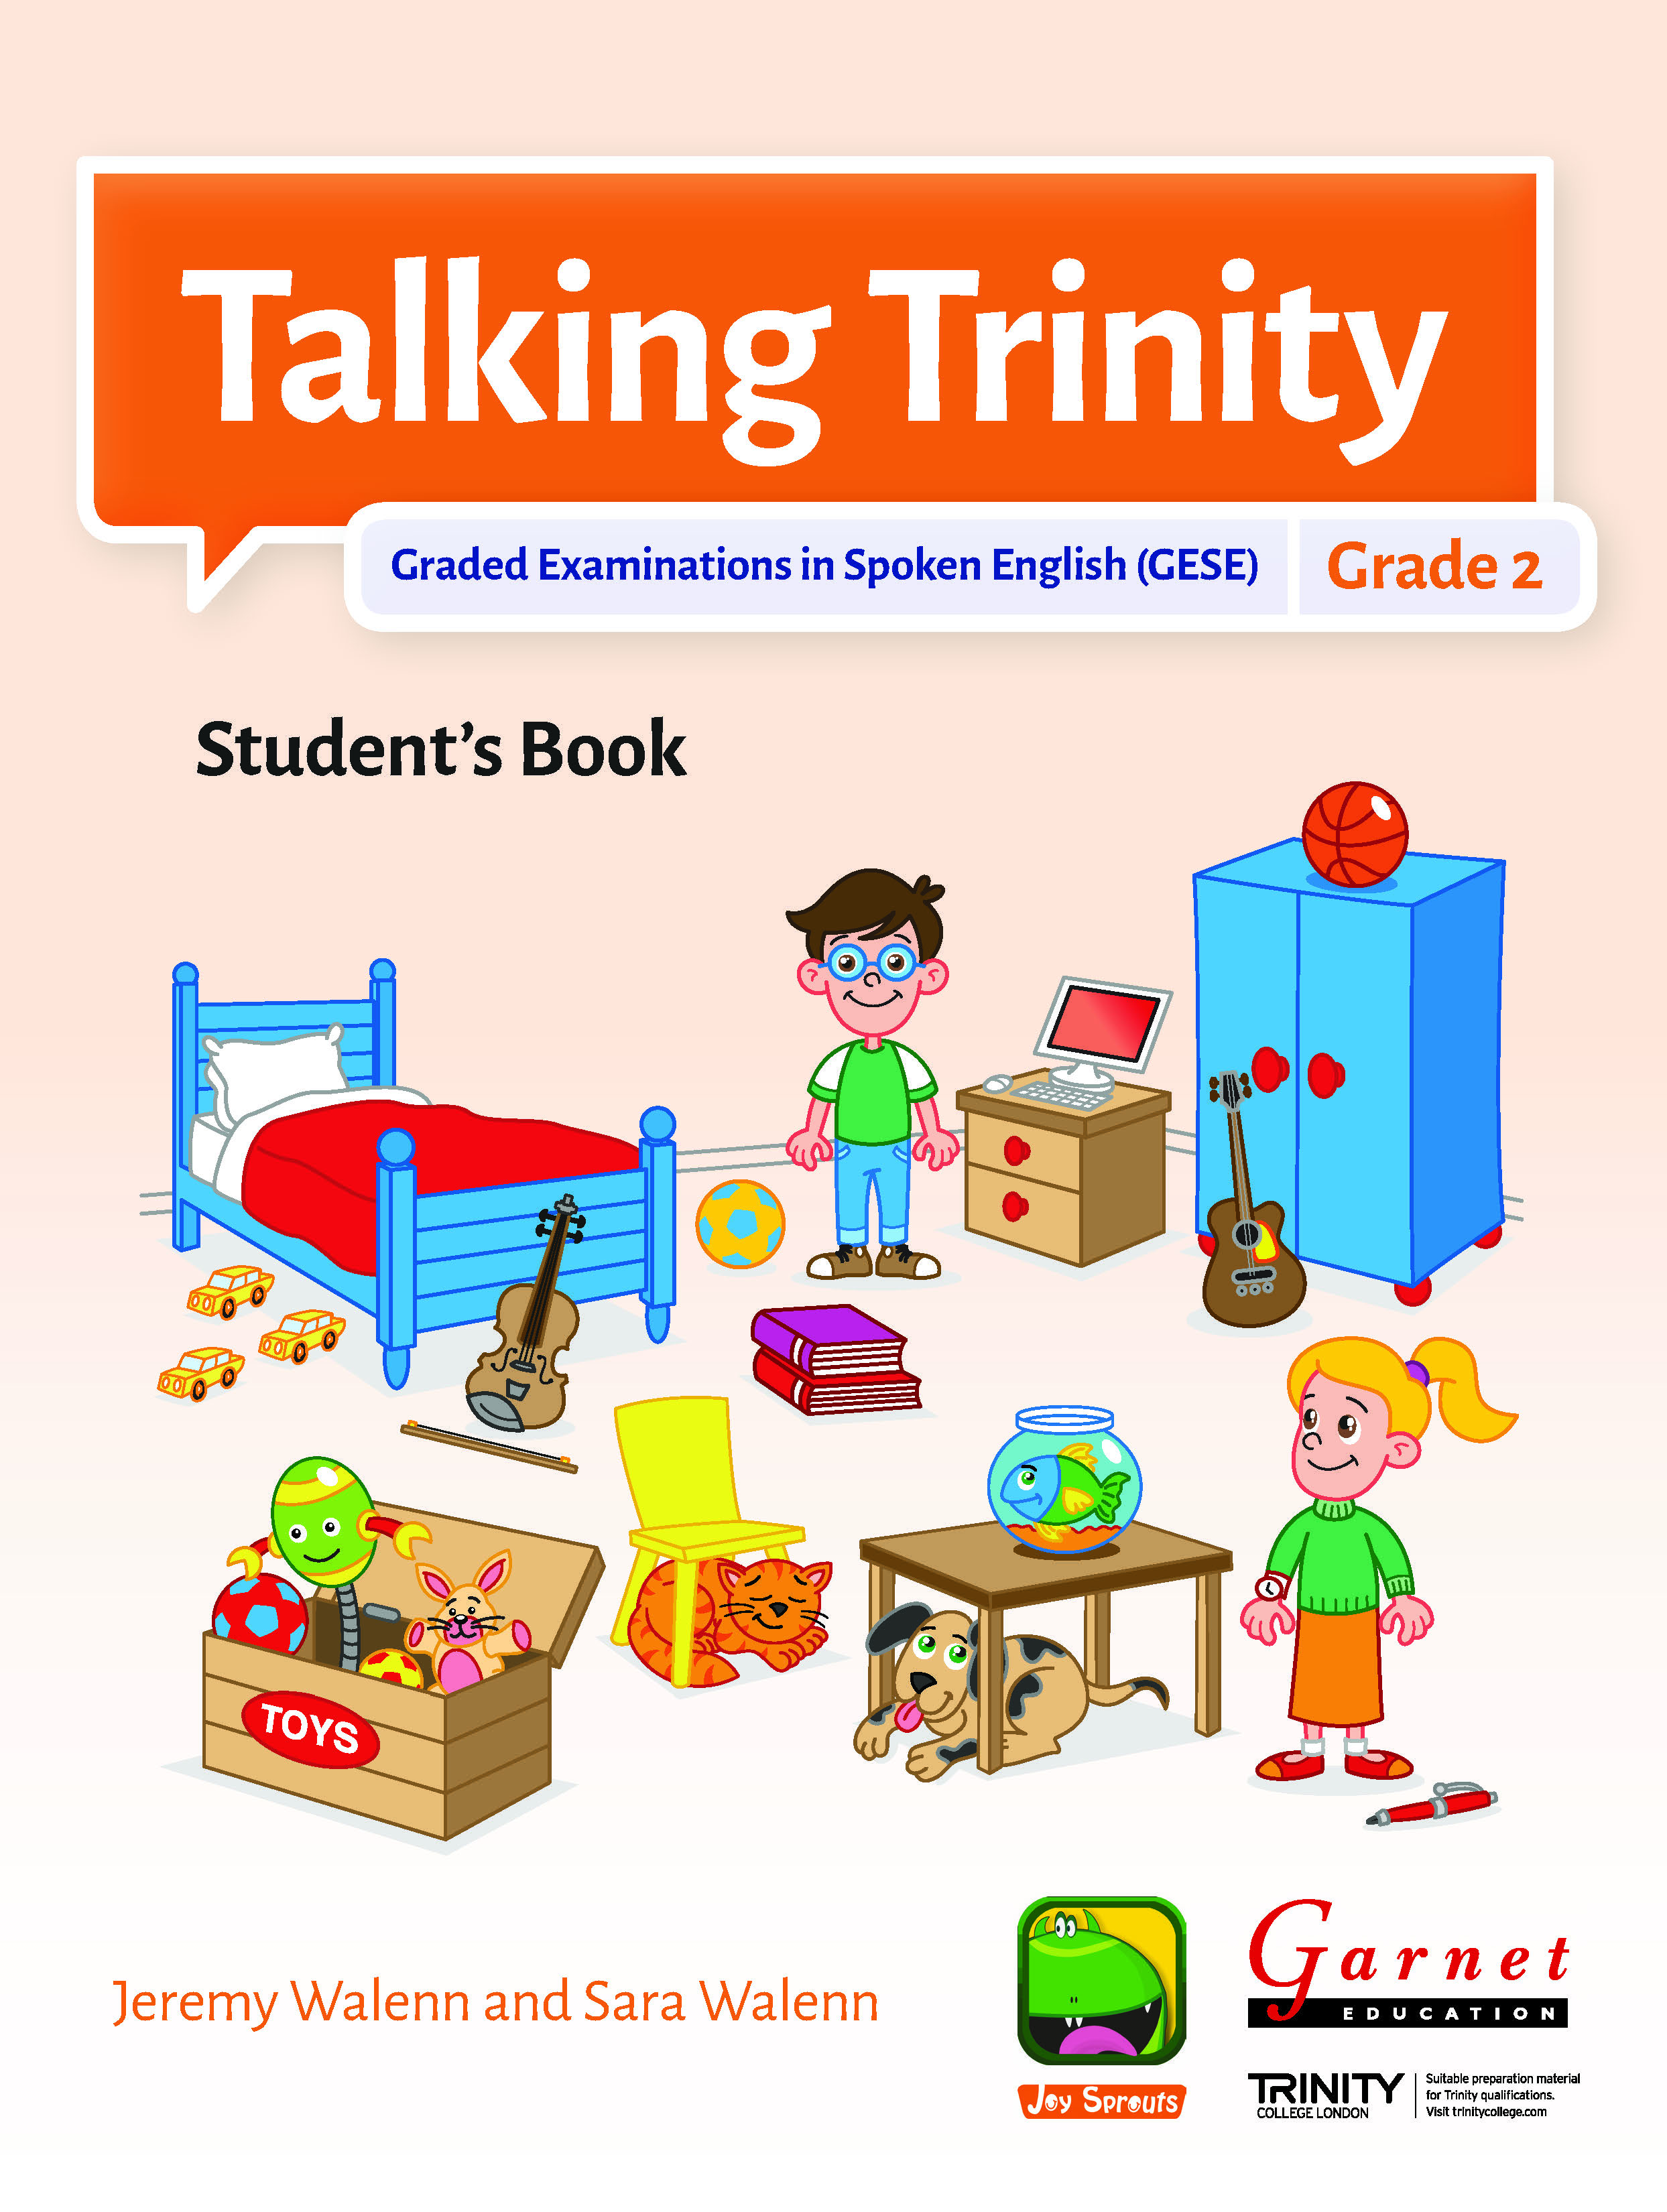 Talking Trinity 2018 Edition – GESE Grade 2 Student's Book